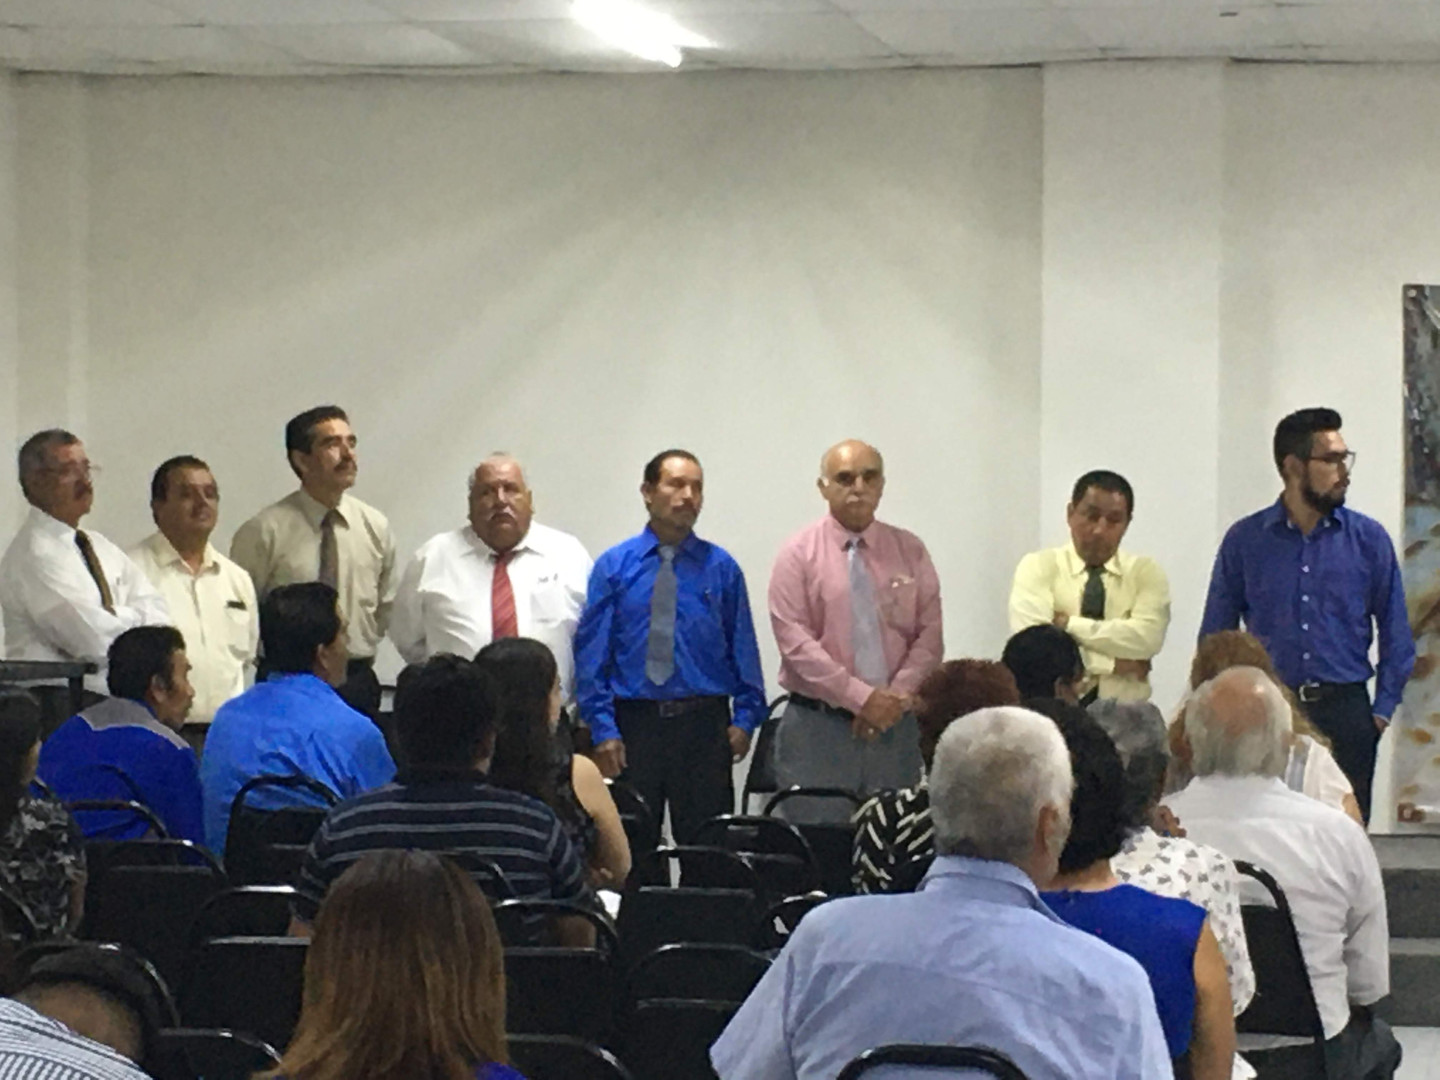 Brothers part of the ministry in Monterrey